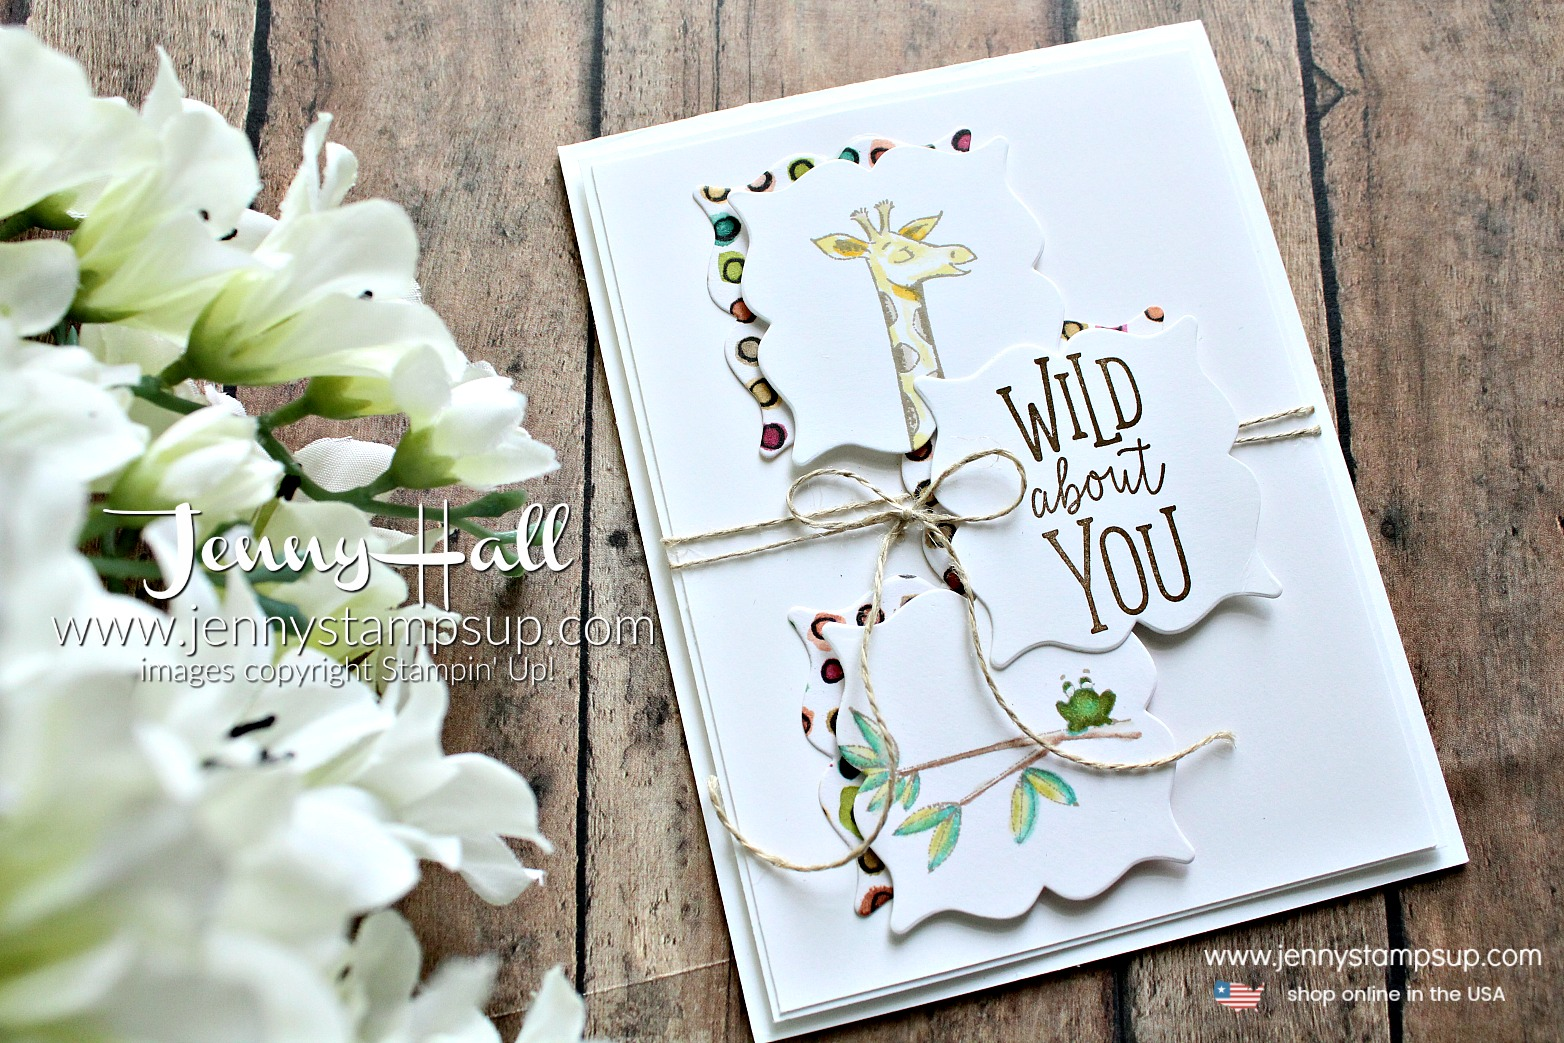 Animal Outing card created by Jenny Hall at www.jennystampsup.com for #cardmaking #stamping #crafts #stampinup #jennyhall #jennyhalldesigns #jennystampsup #animaloutingstampset #cascards #cleanandsimplecards #giraffe #rubberstamp #handmade #lifestyle #diy